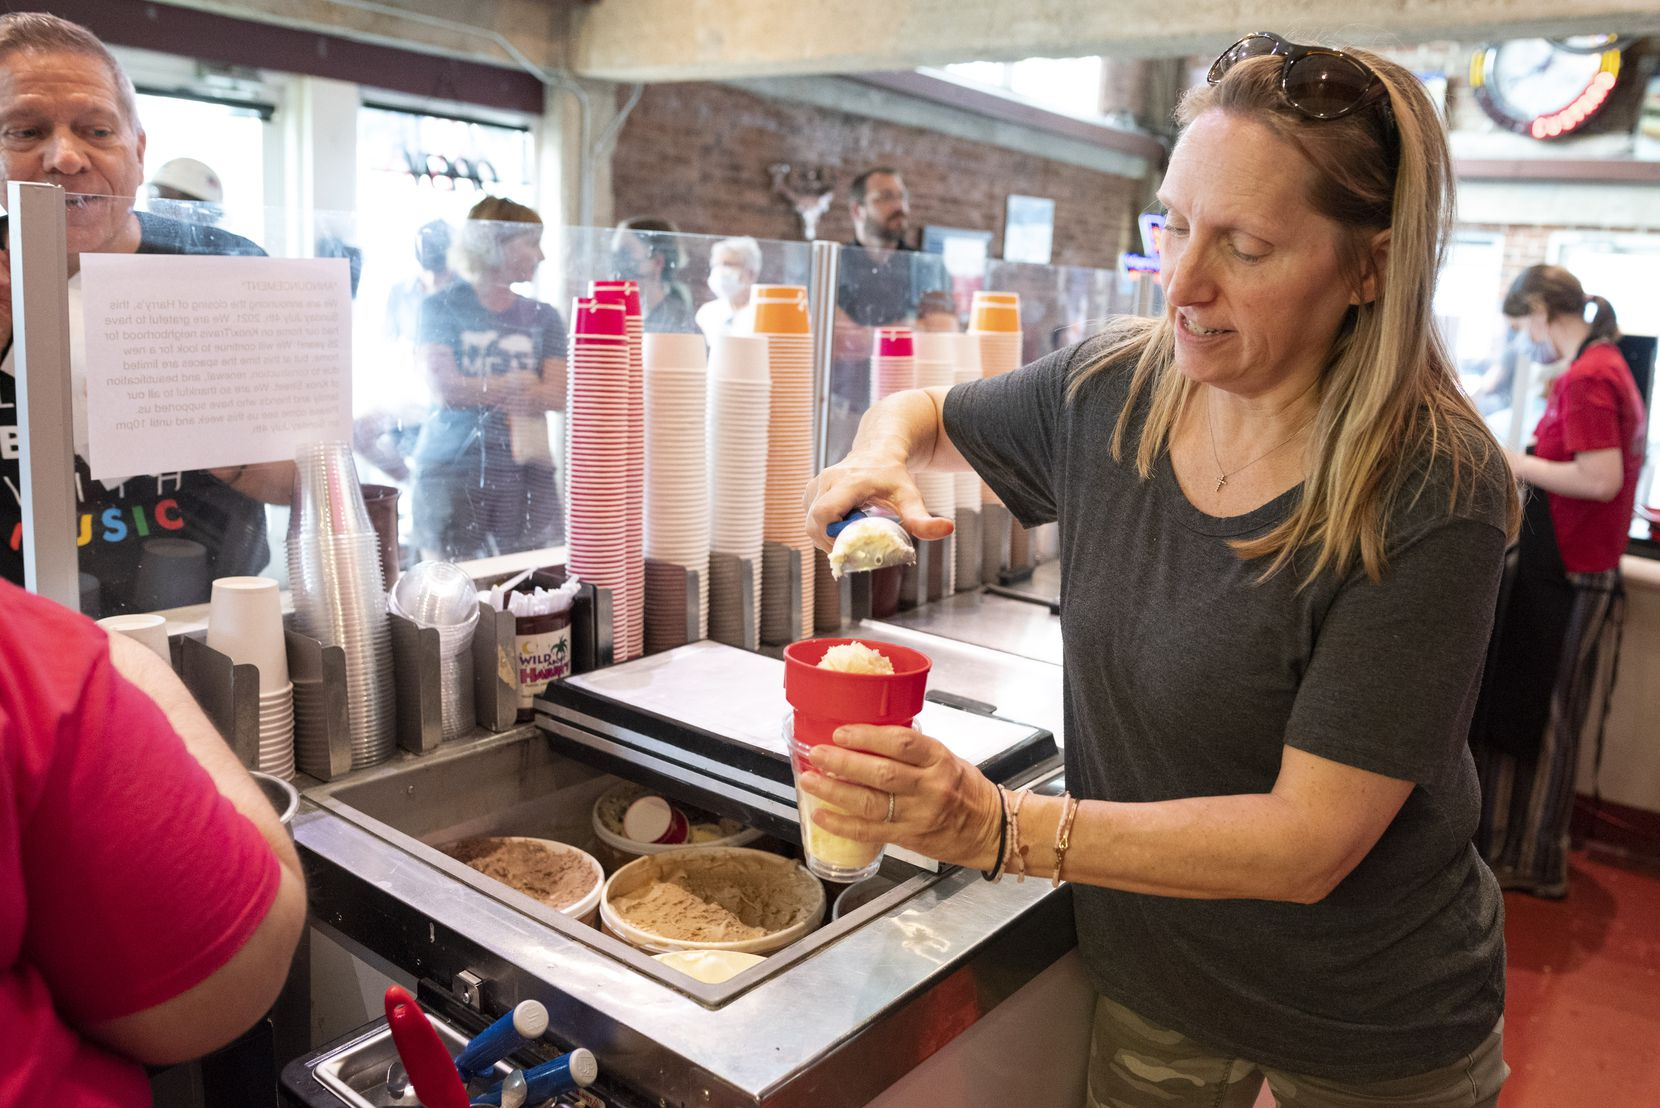 President of operations Sydney Coley-Berglund prepares a vanilla concrete with Oreos at Wild About Harry's in Dallas on June 30, 2021.